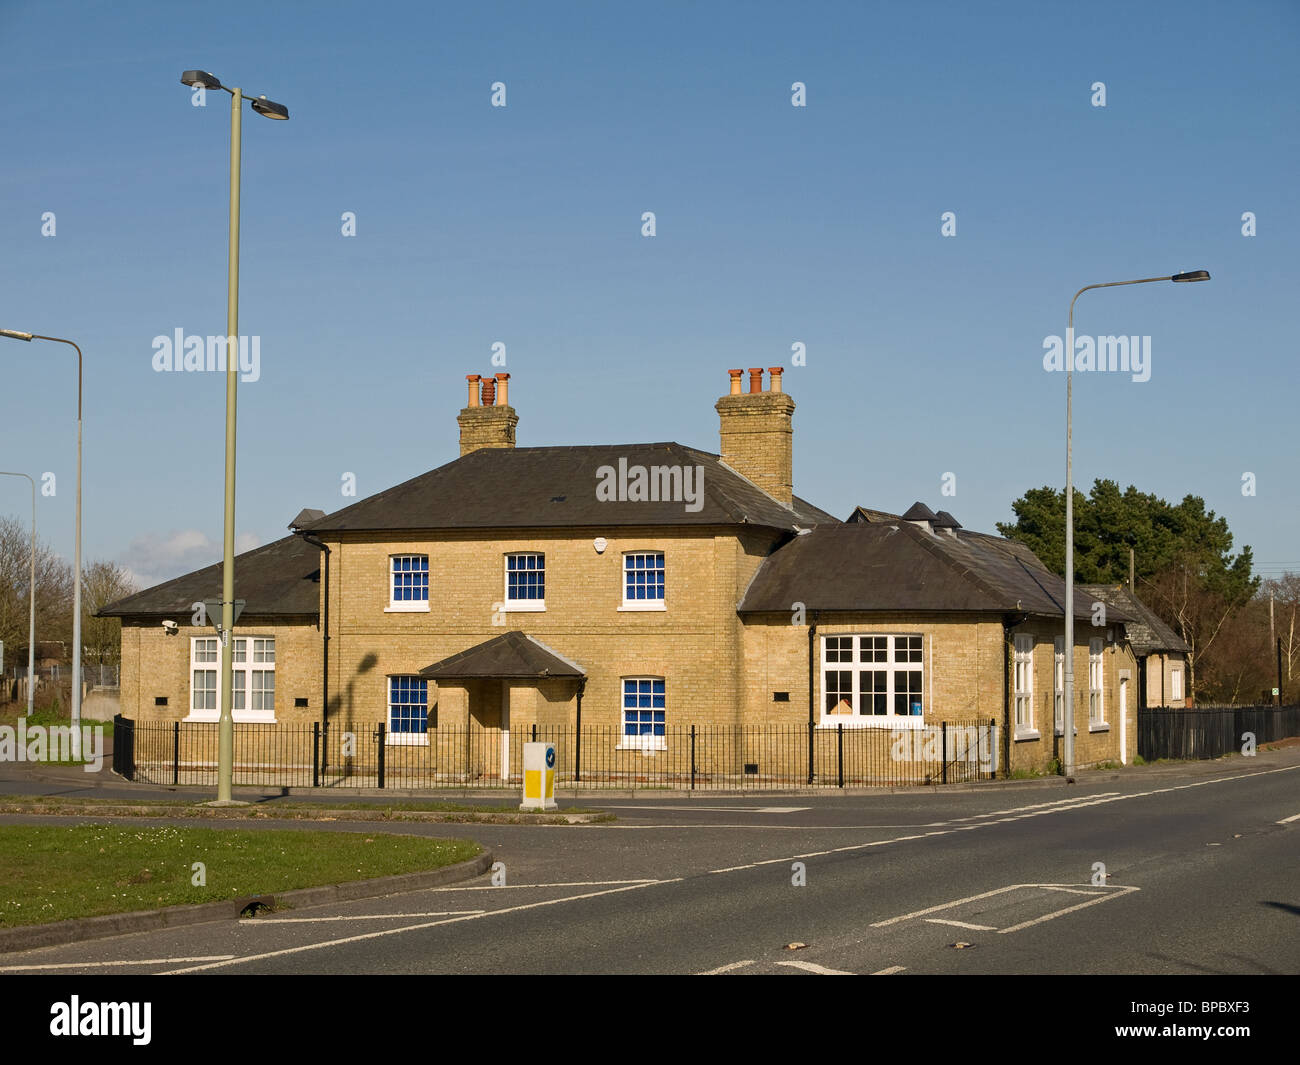 Fawley Old Infants Schoolhouse Hampshire England UK, a grade II listed building now used as a commercial property. - Stock Image